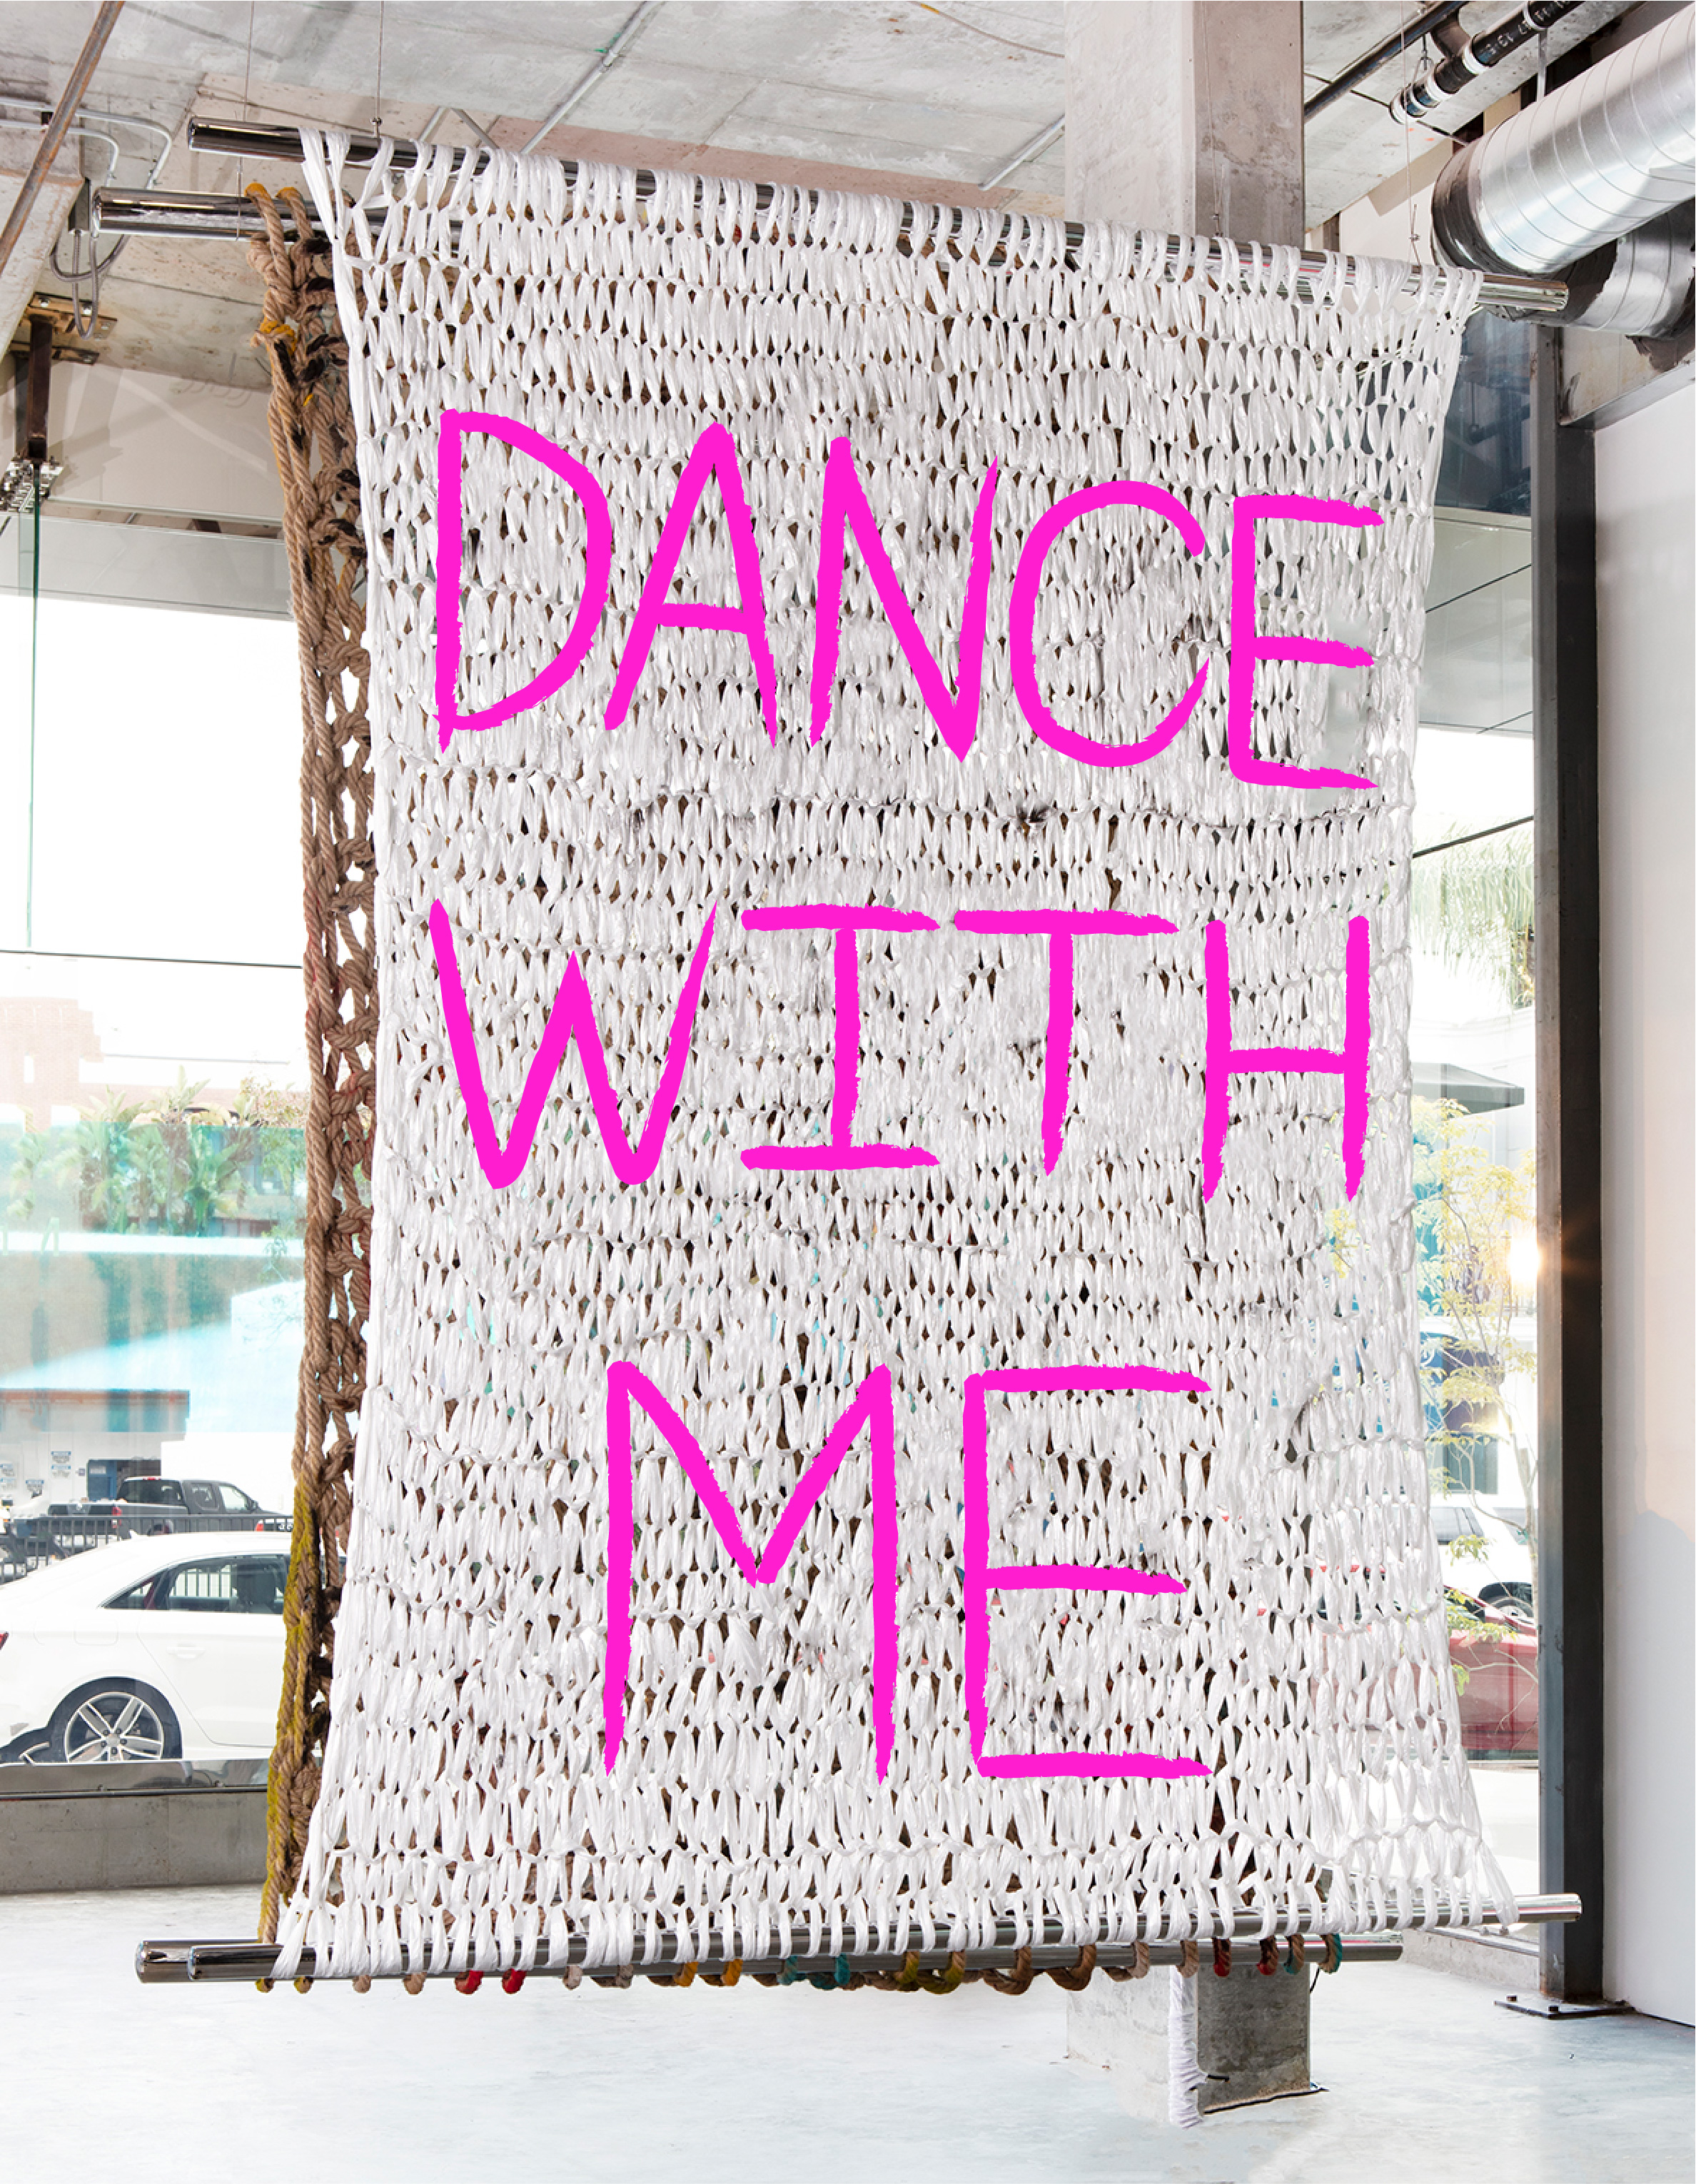 DANCE WITH ME | 10 X 8' | PAINT ON PLASTIC